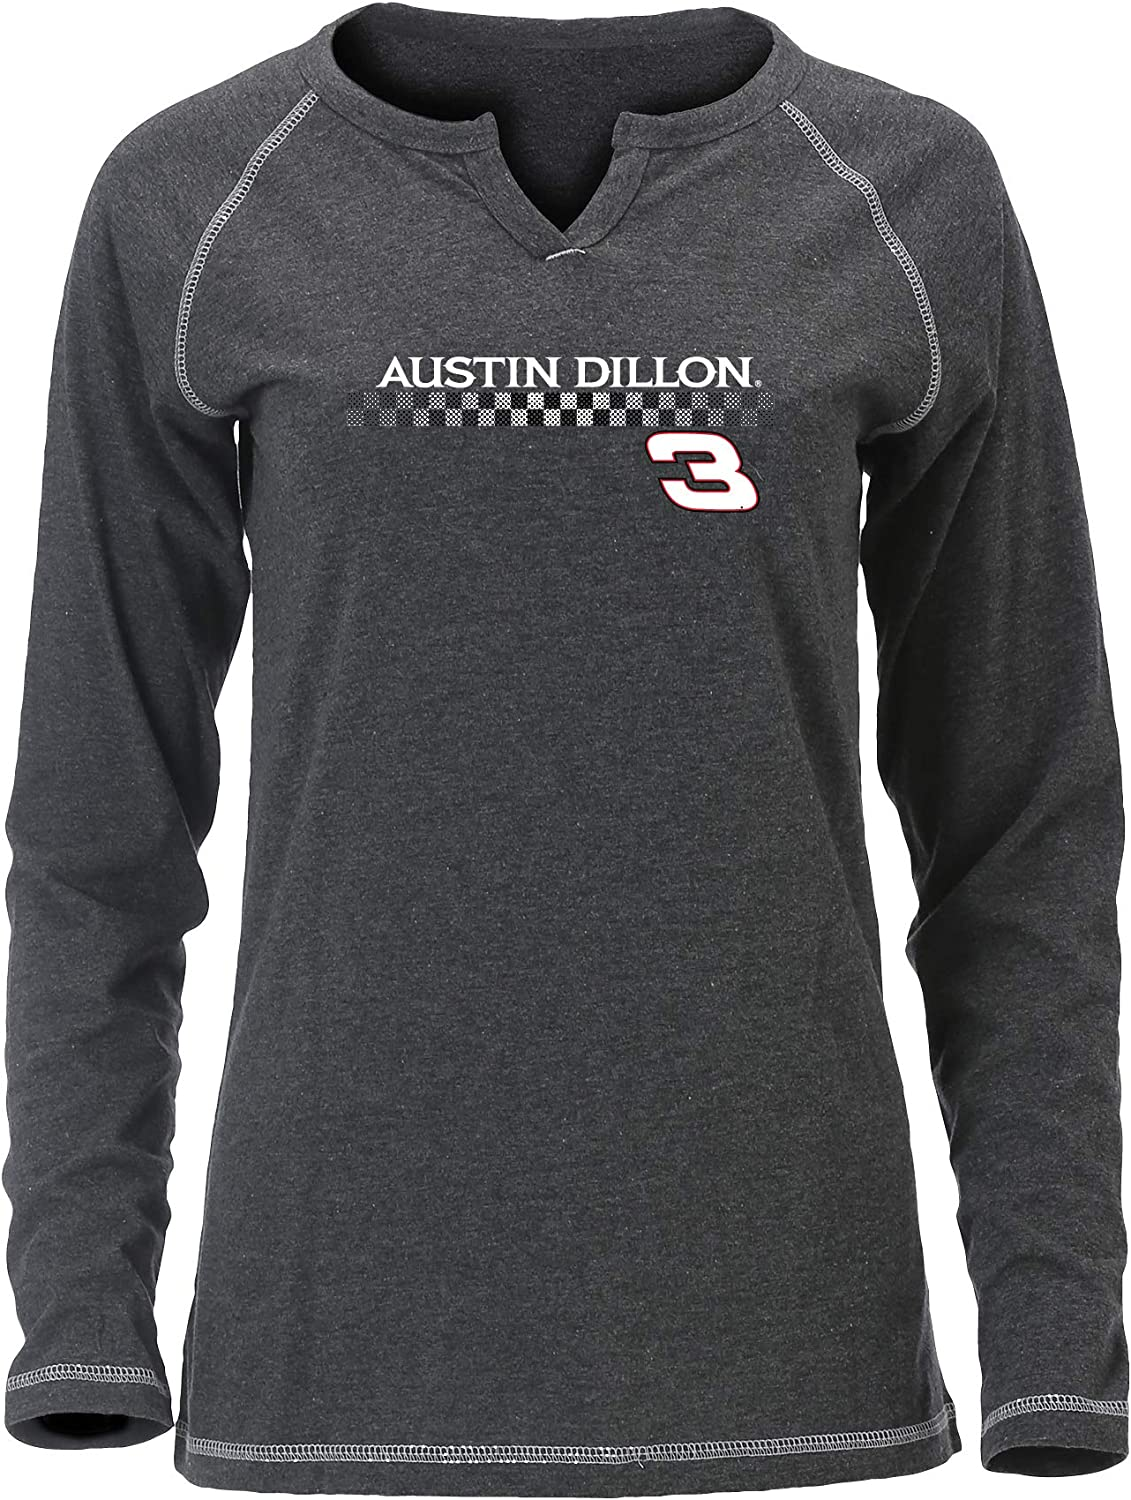 Ouray Sportswear NASCAR Womens W Groove L//S T Austin Dillon Large Charcoal Heather